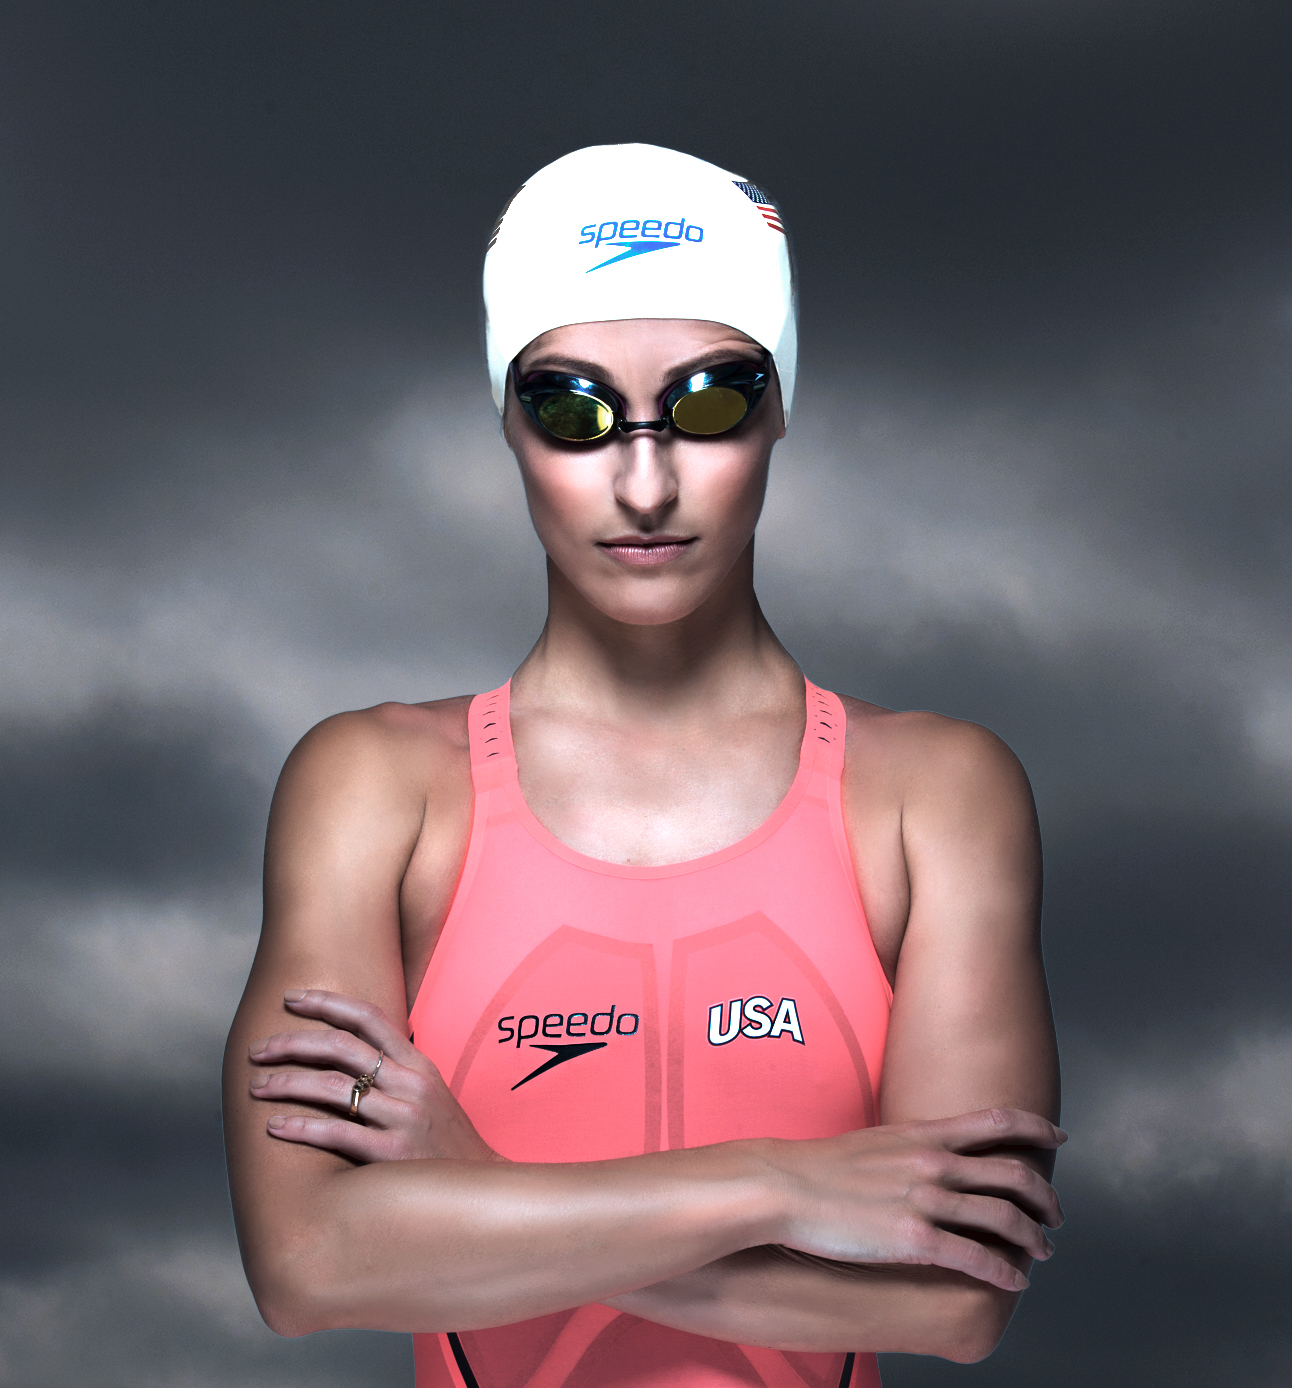 Olympic Medalist Kim (@kimswim) giving her Olympic look ;-)